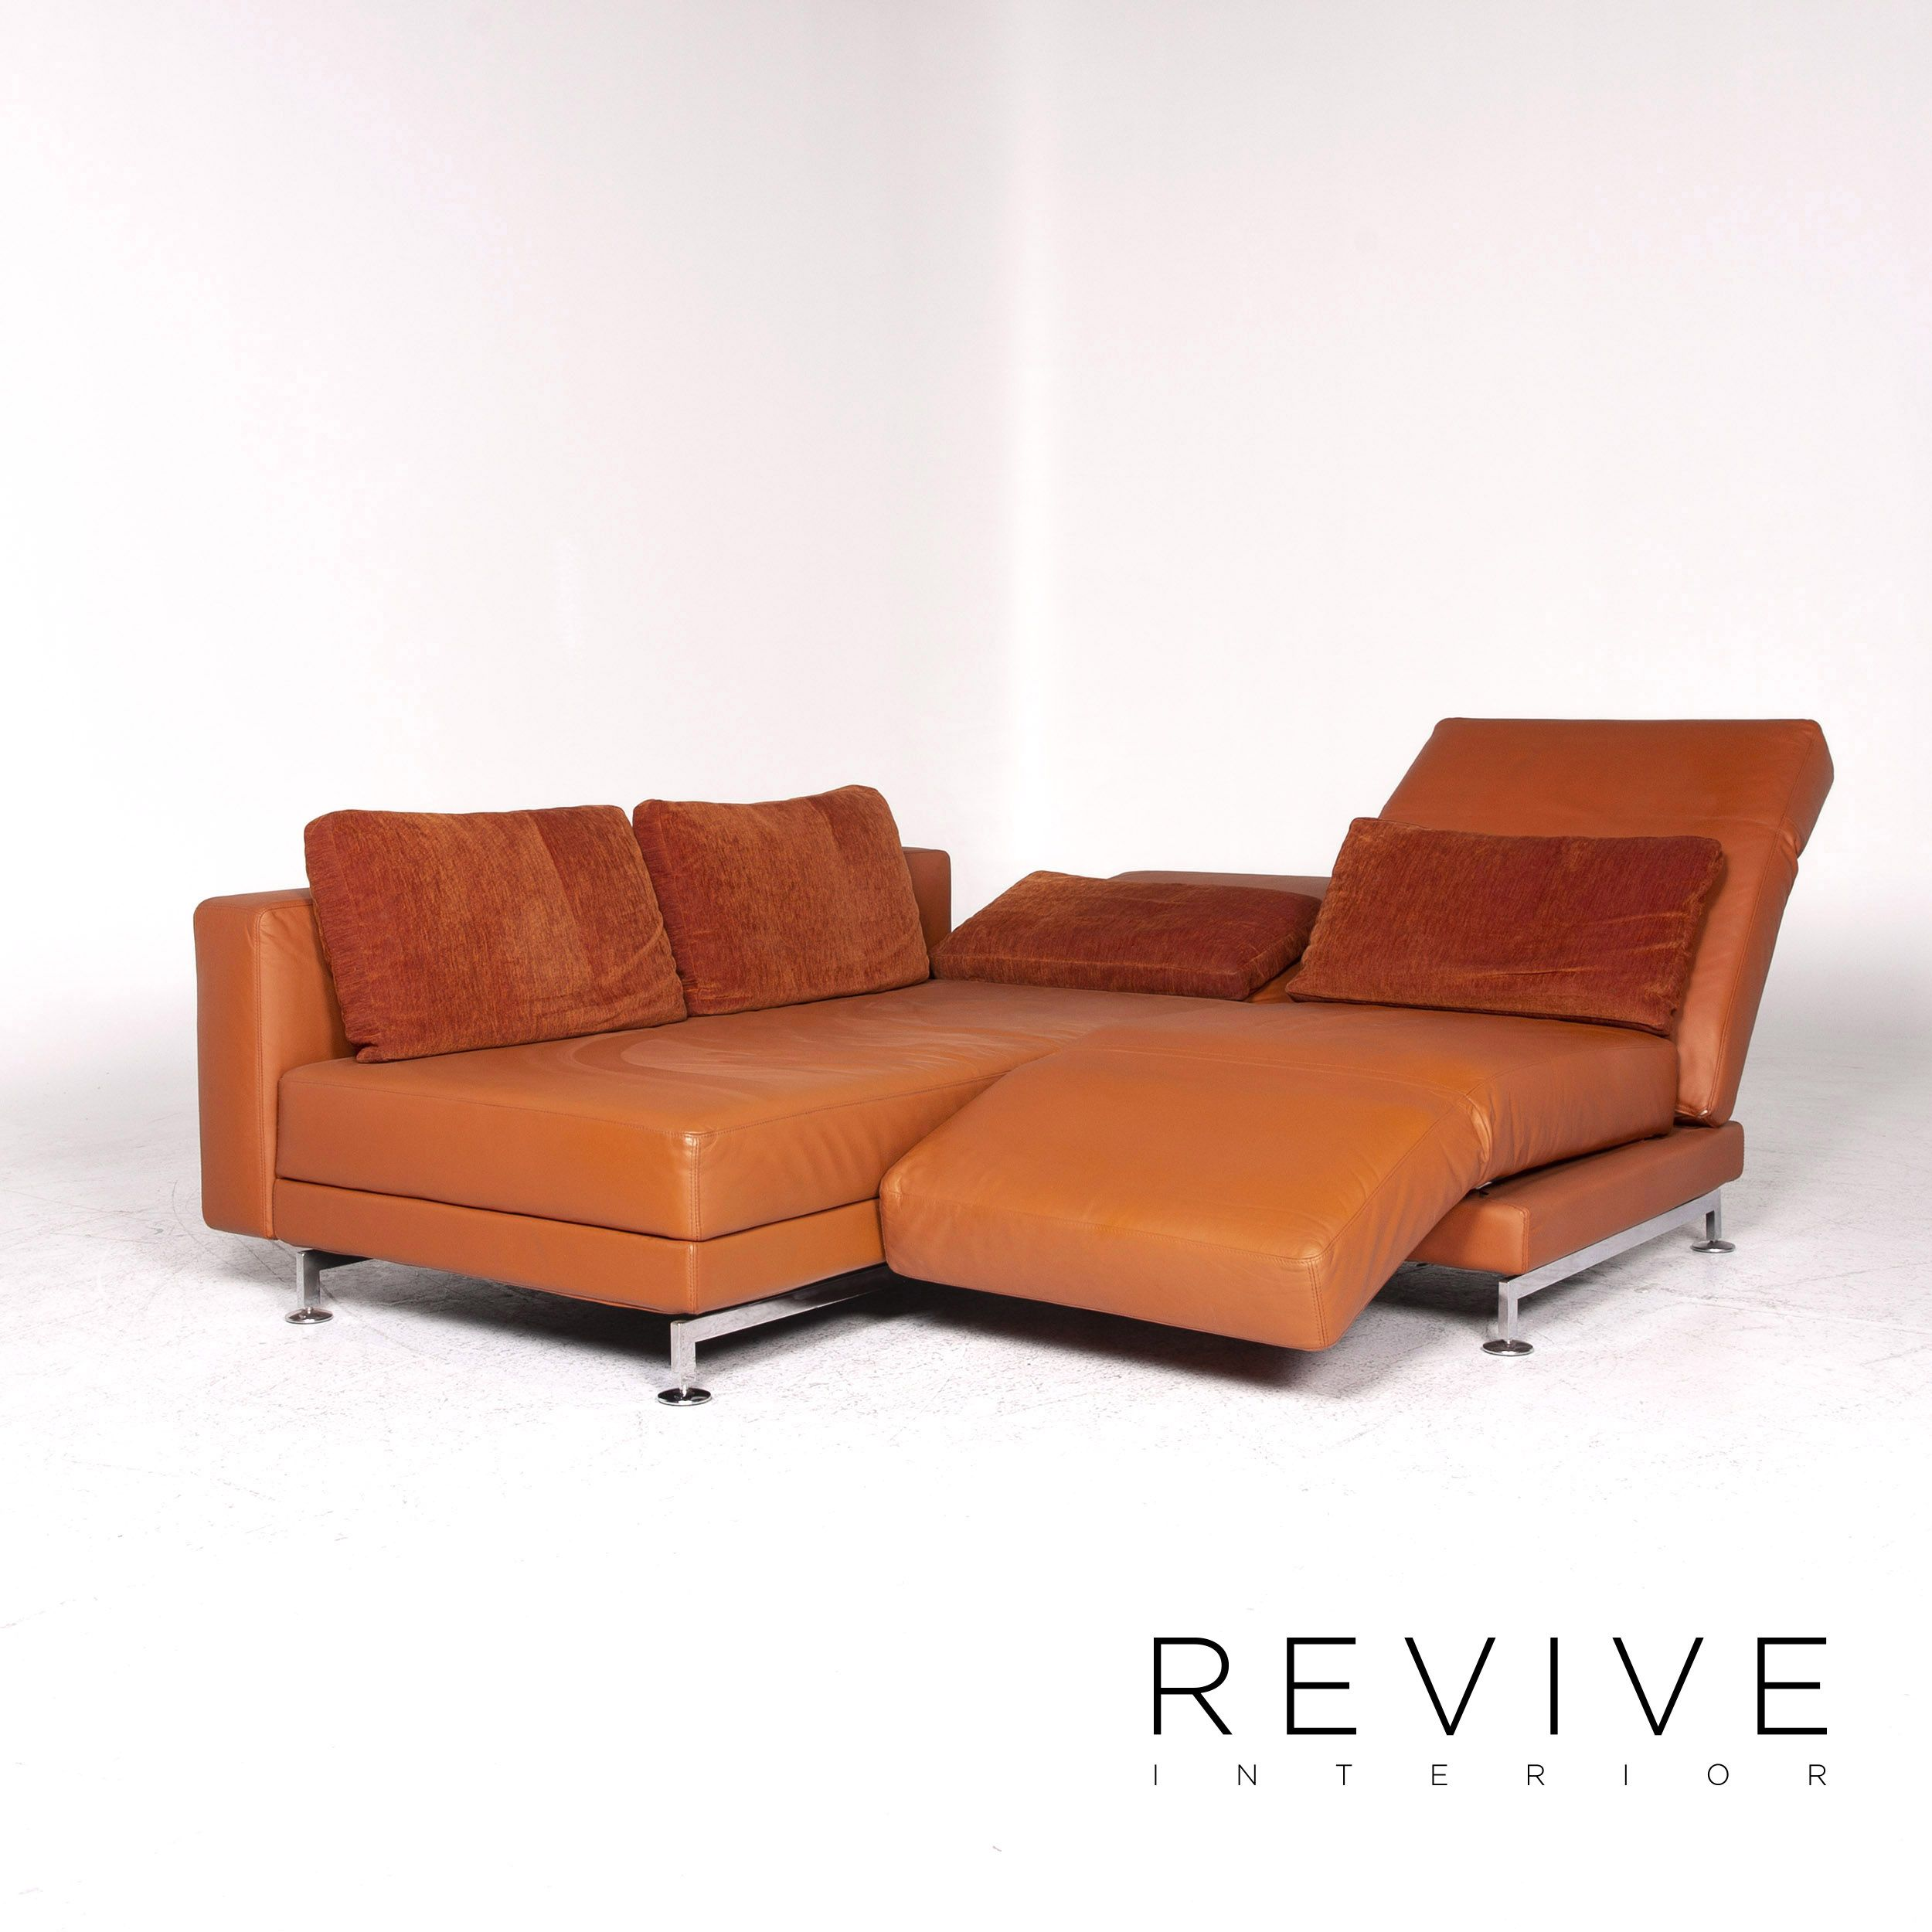 Bruhl Sippold Moule Designer Sofa Garnitur Orange Ecksofa Hocker Funktion 8996 Sofa Sessel Gebraucht Kaufen Sofa Design Bruhl Sofa Und Gebrauchte Mobel